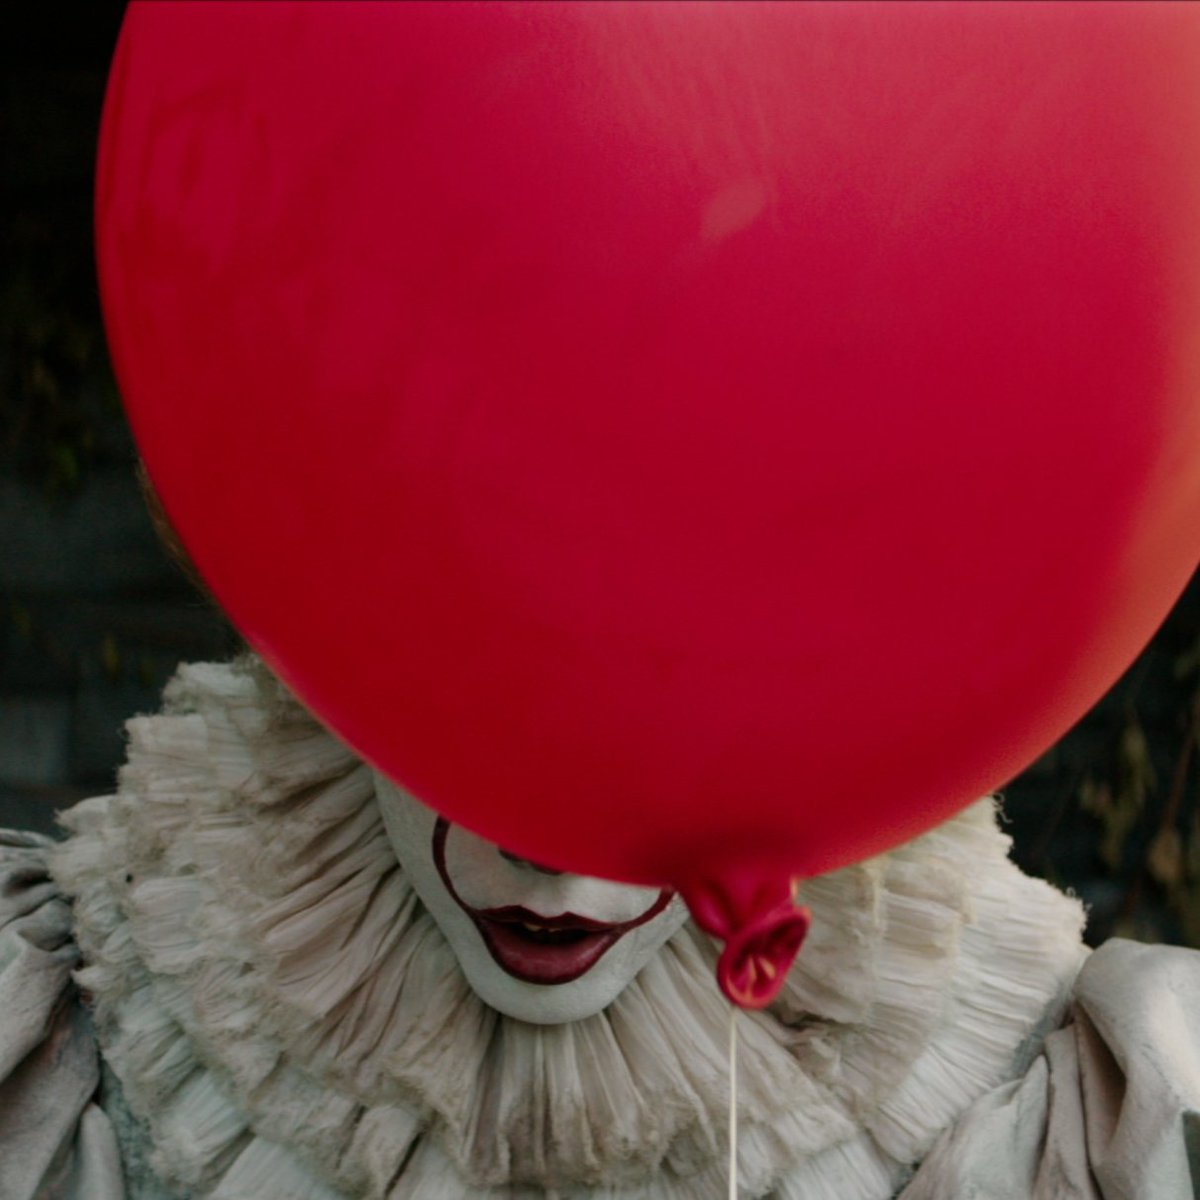 This September, IT is coming. Watch the first trailer for #ITMovie! 🤡🎈...